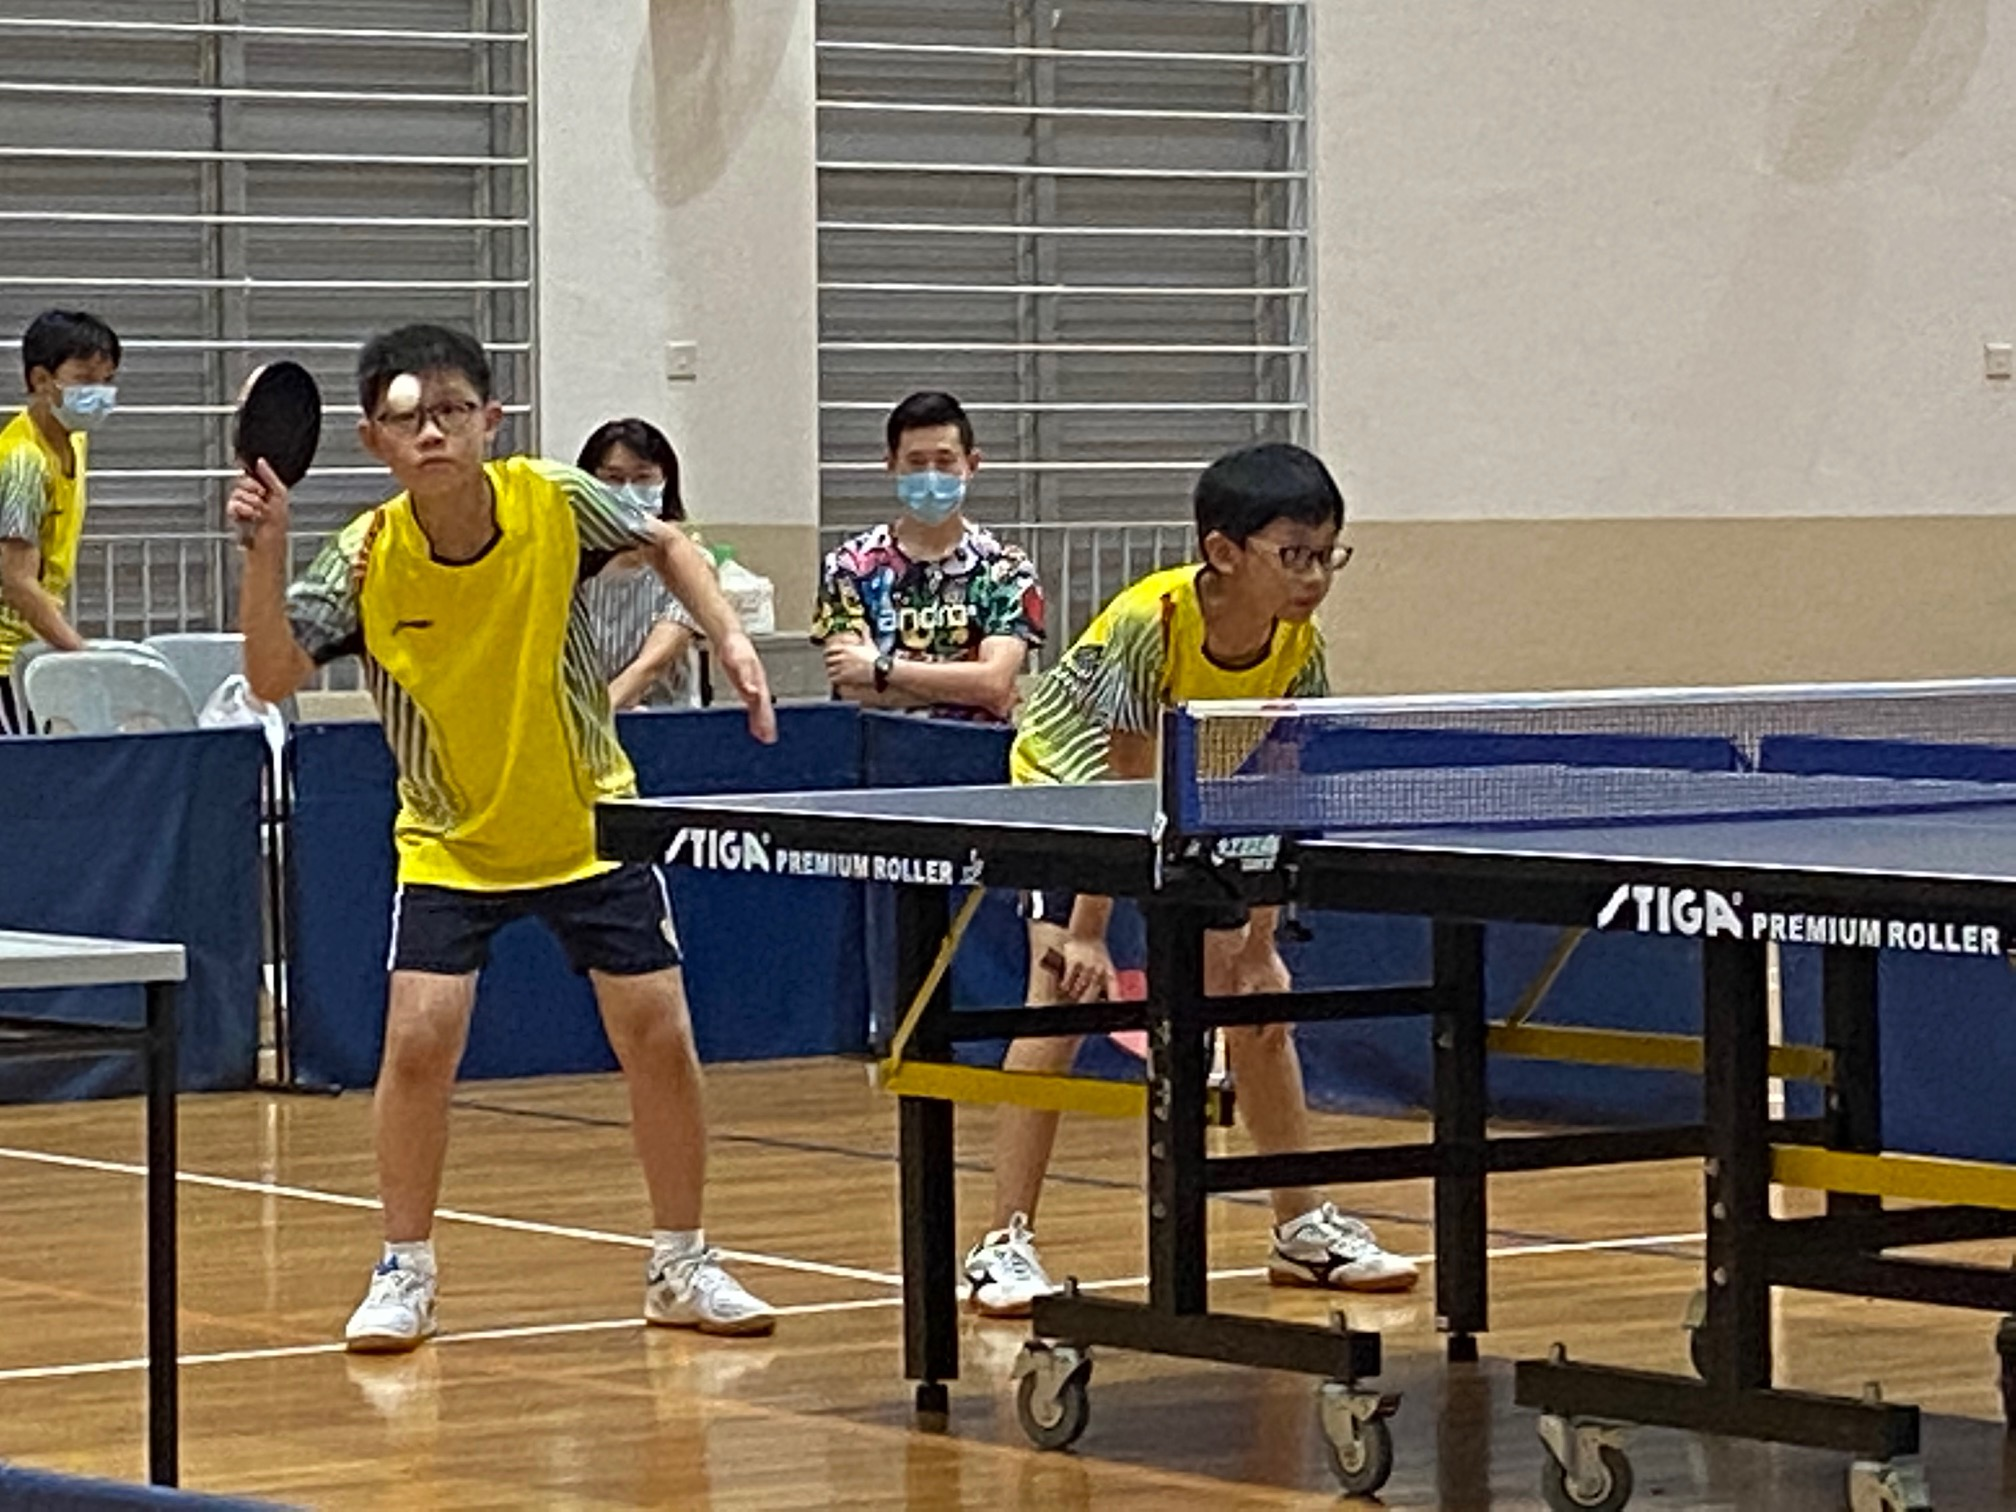 NSG East Zone Snr Div boys table tennis final - first doubles